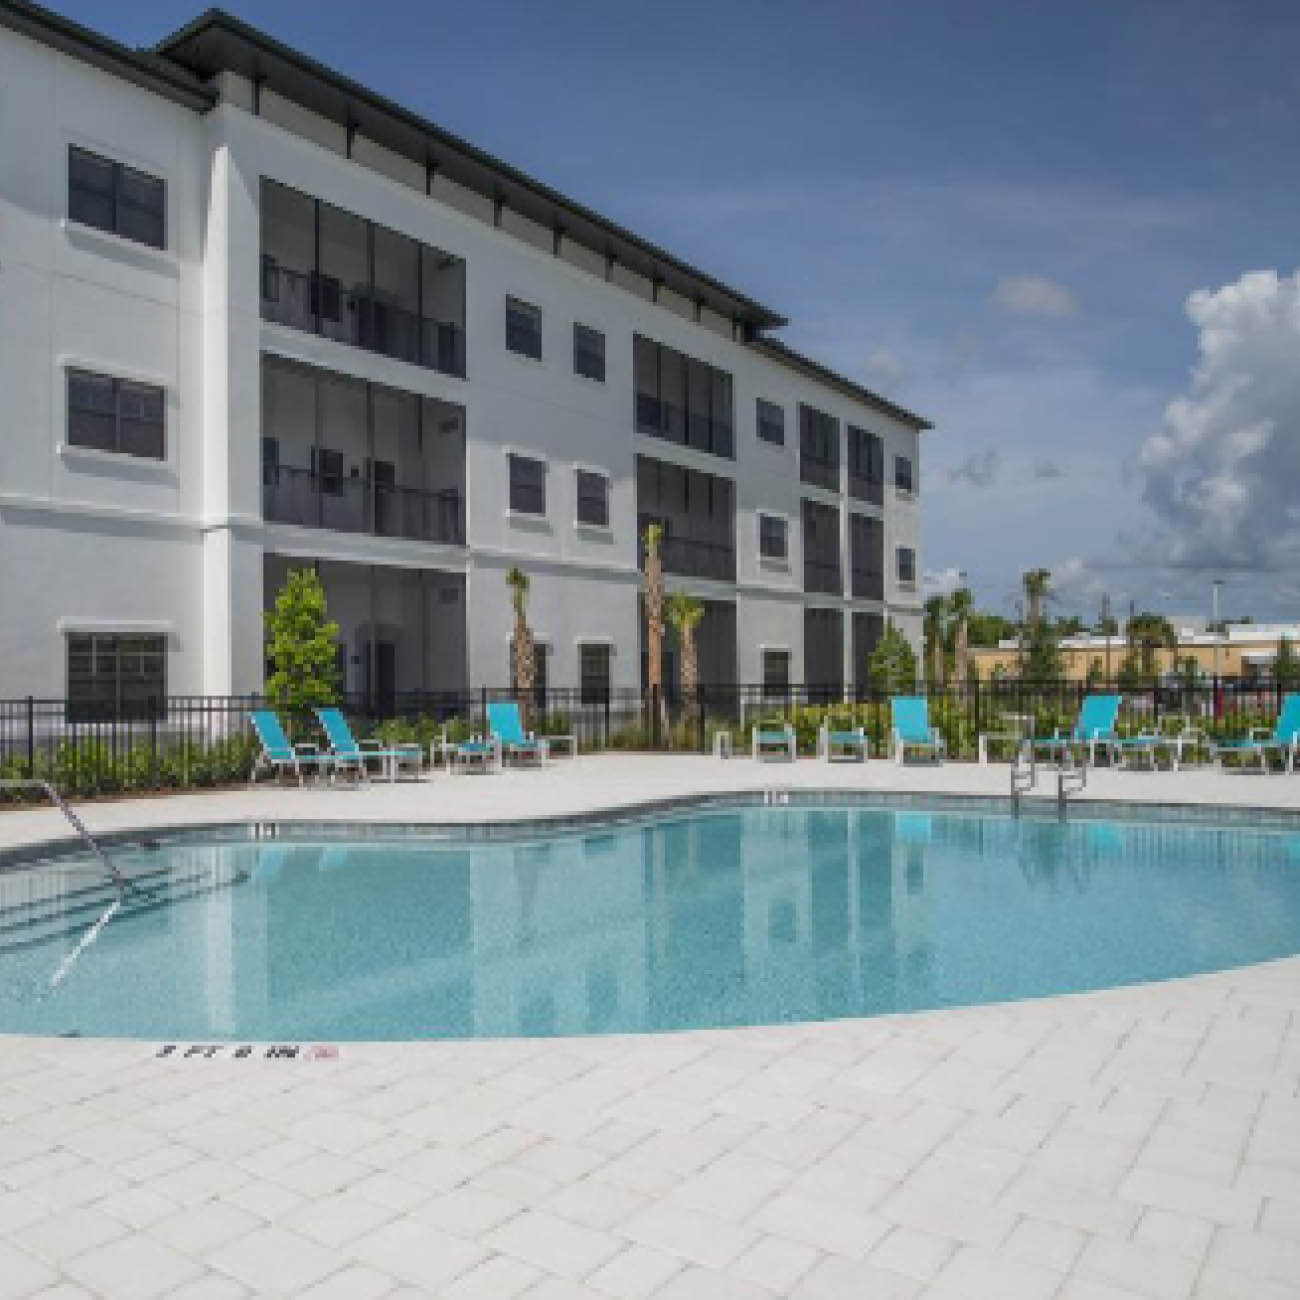 Pool, lawn chairs and balconies at Highpoint at Cape Coral